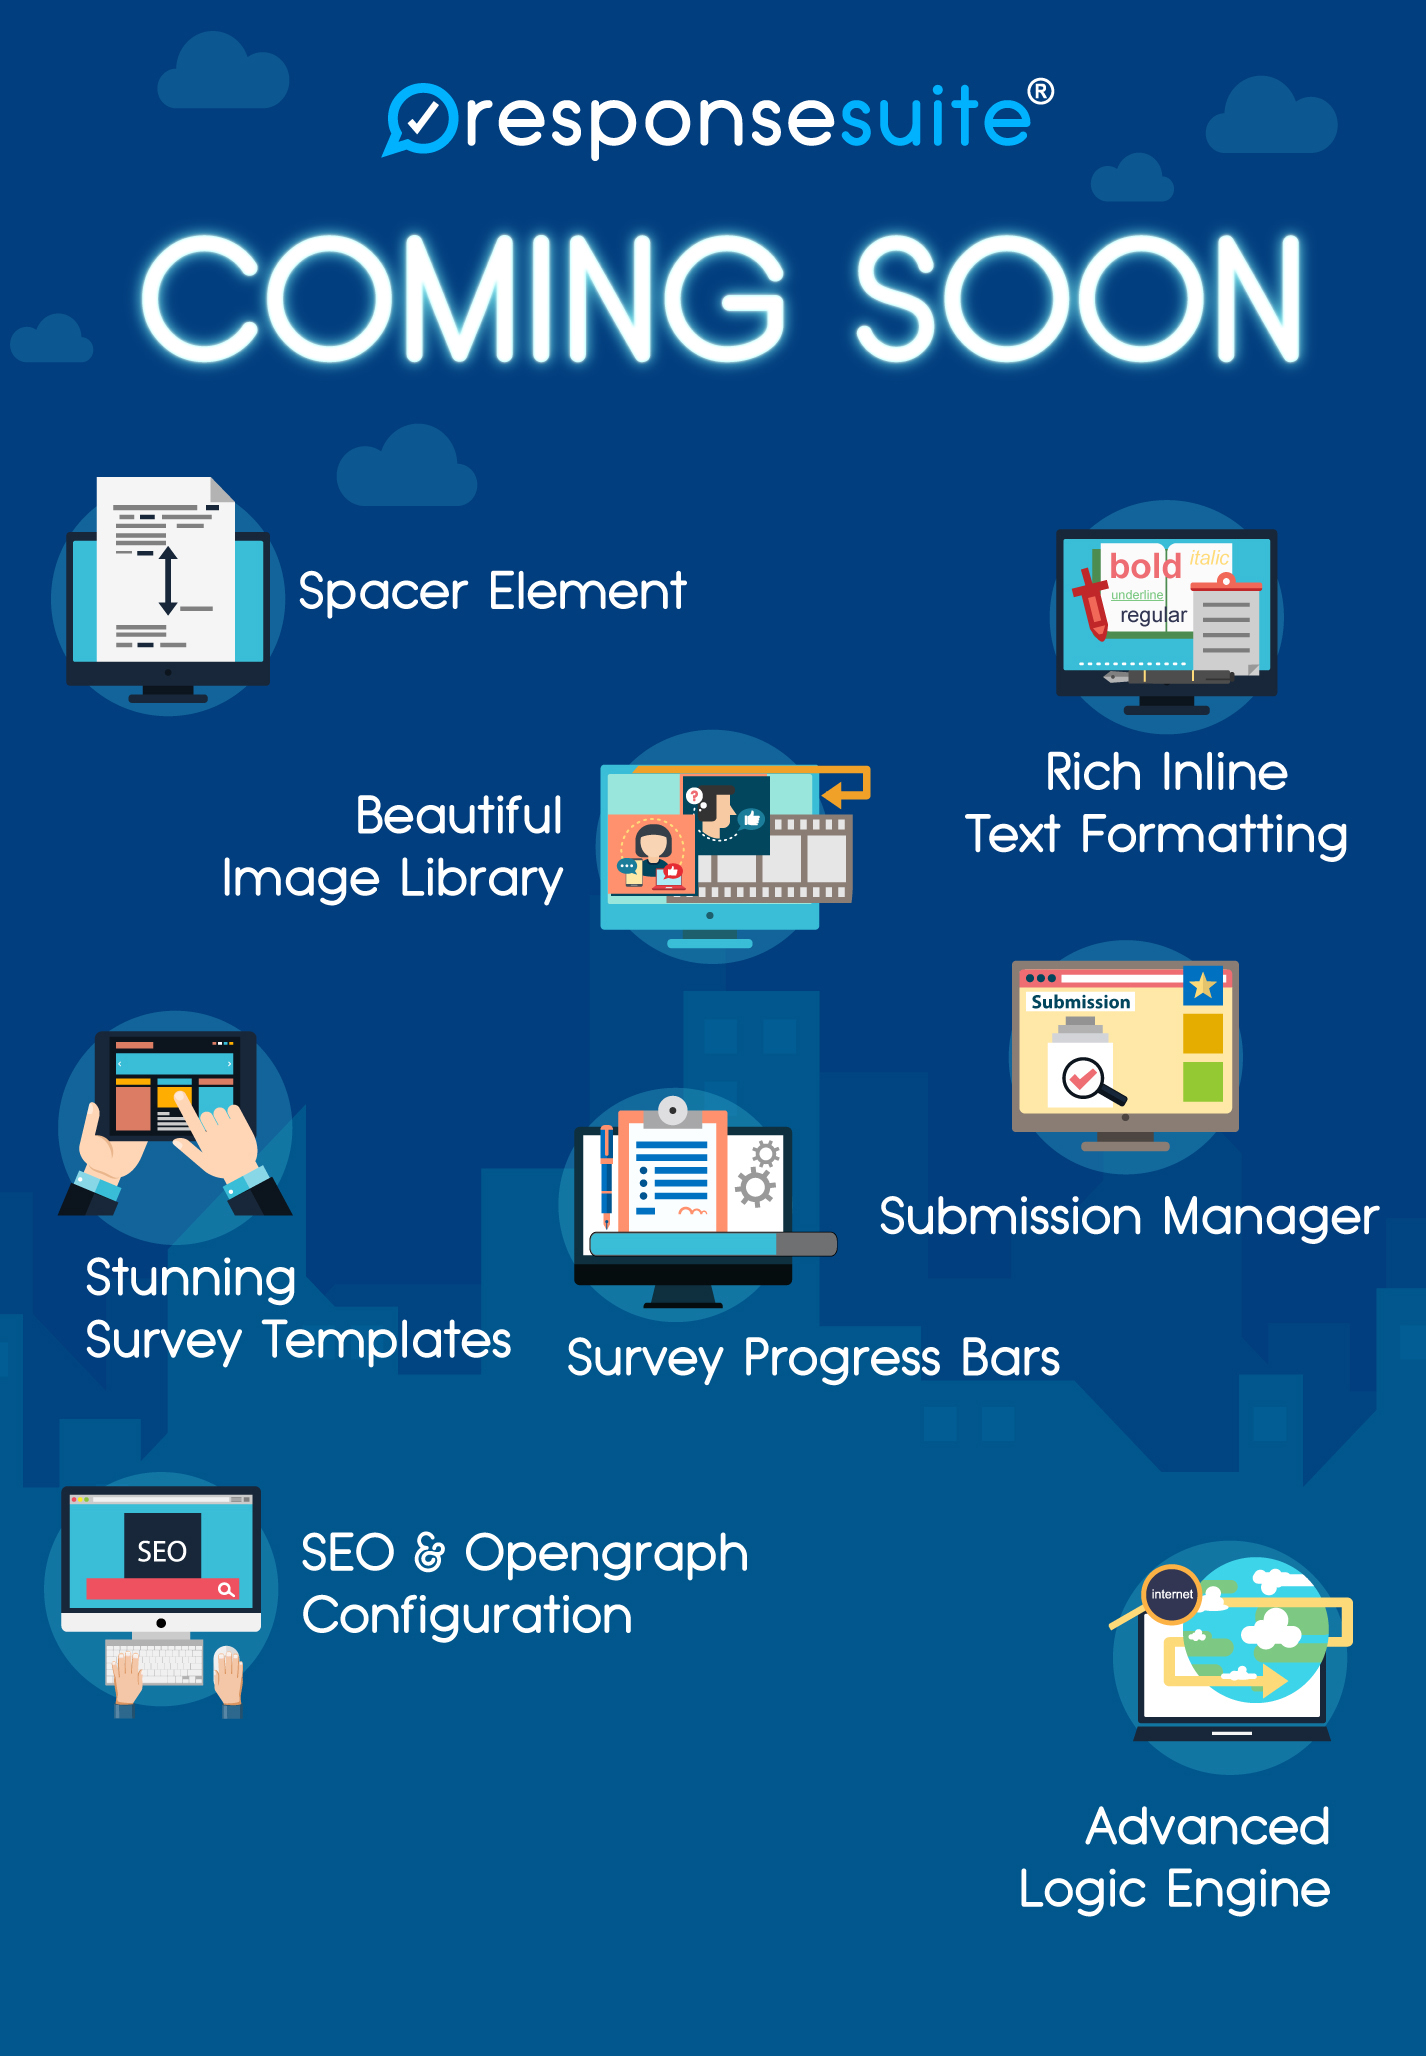 COMING-SOON-INFOGRAPHIC11